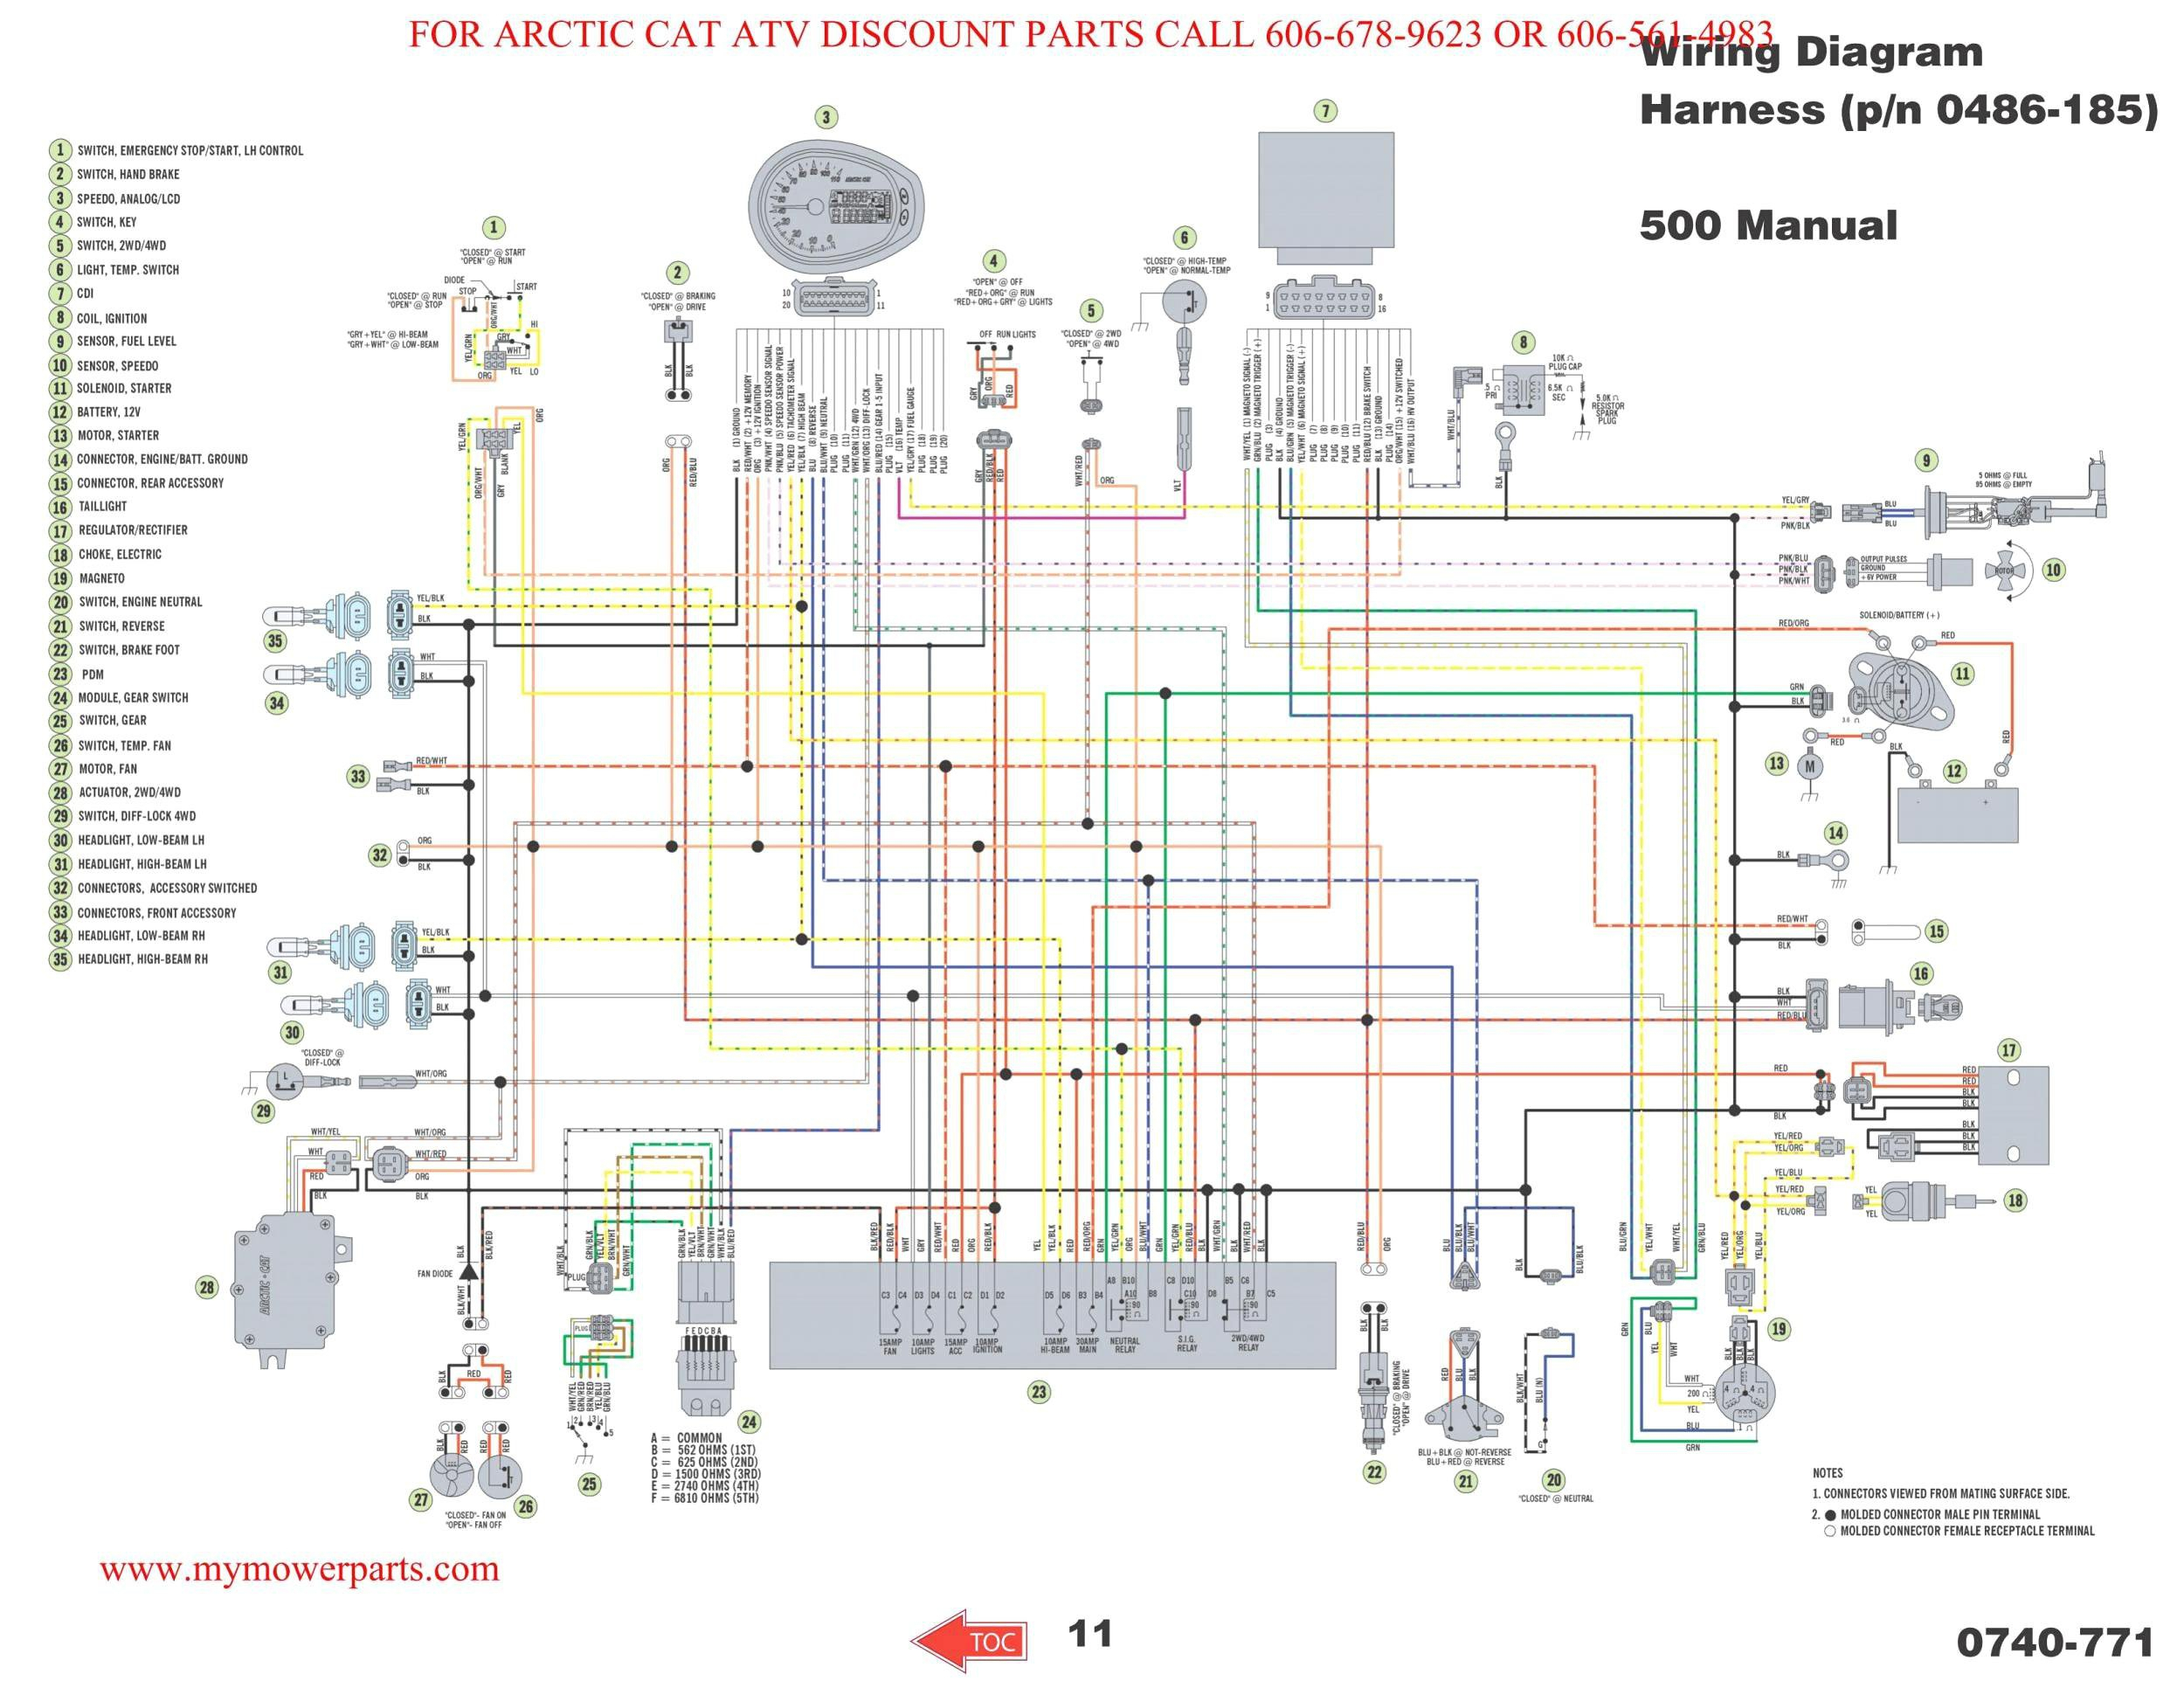 2009 Polaris Ranger Wiring Diagram - Wiring Diagram M4 on